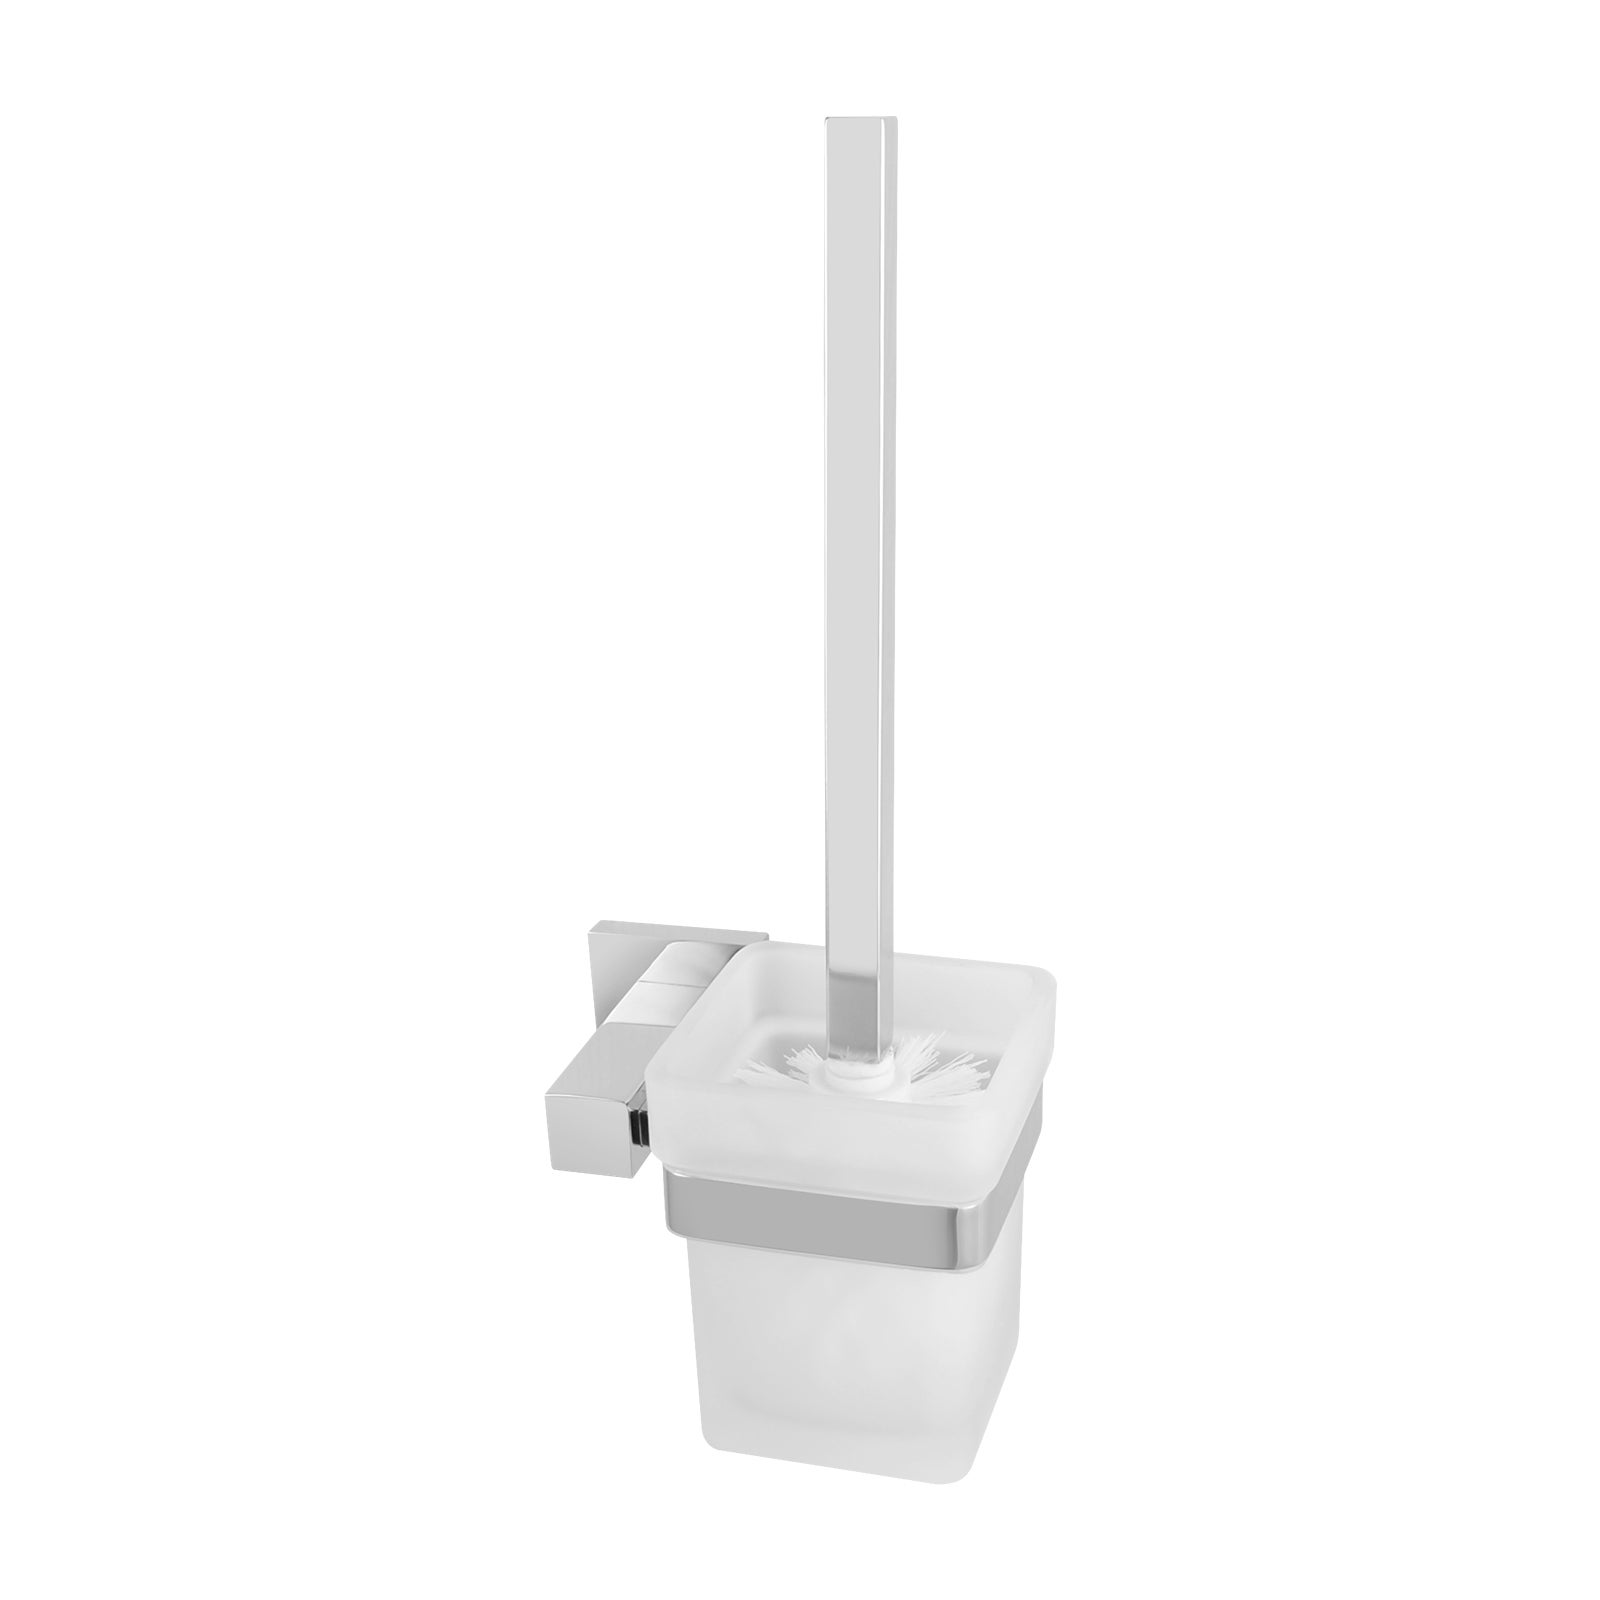 Luxury Bathroom Square Toilet Brush with Glass Holder